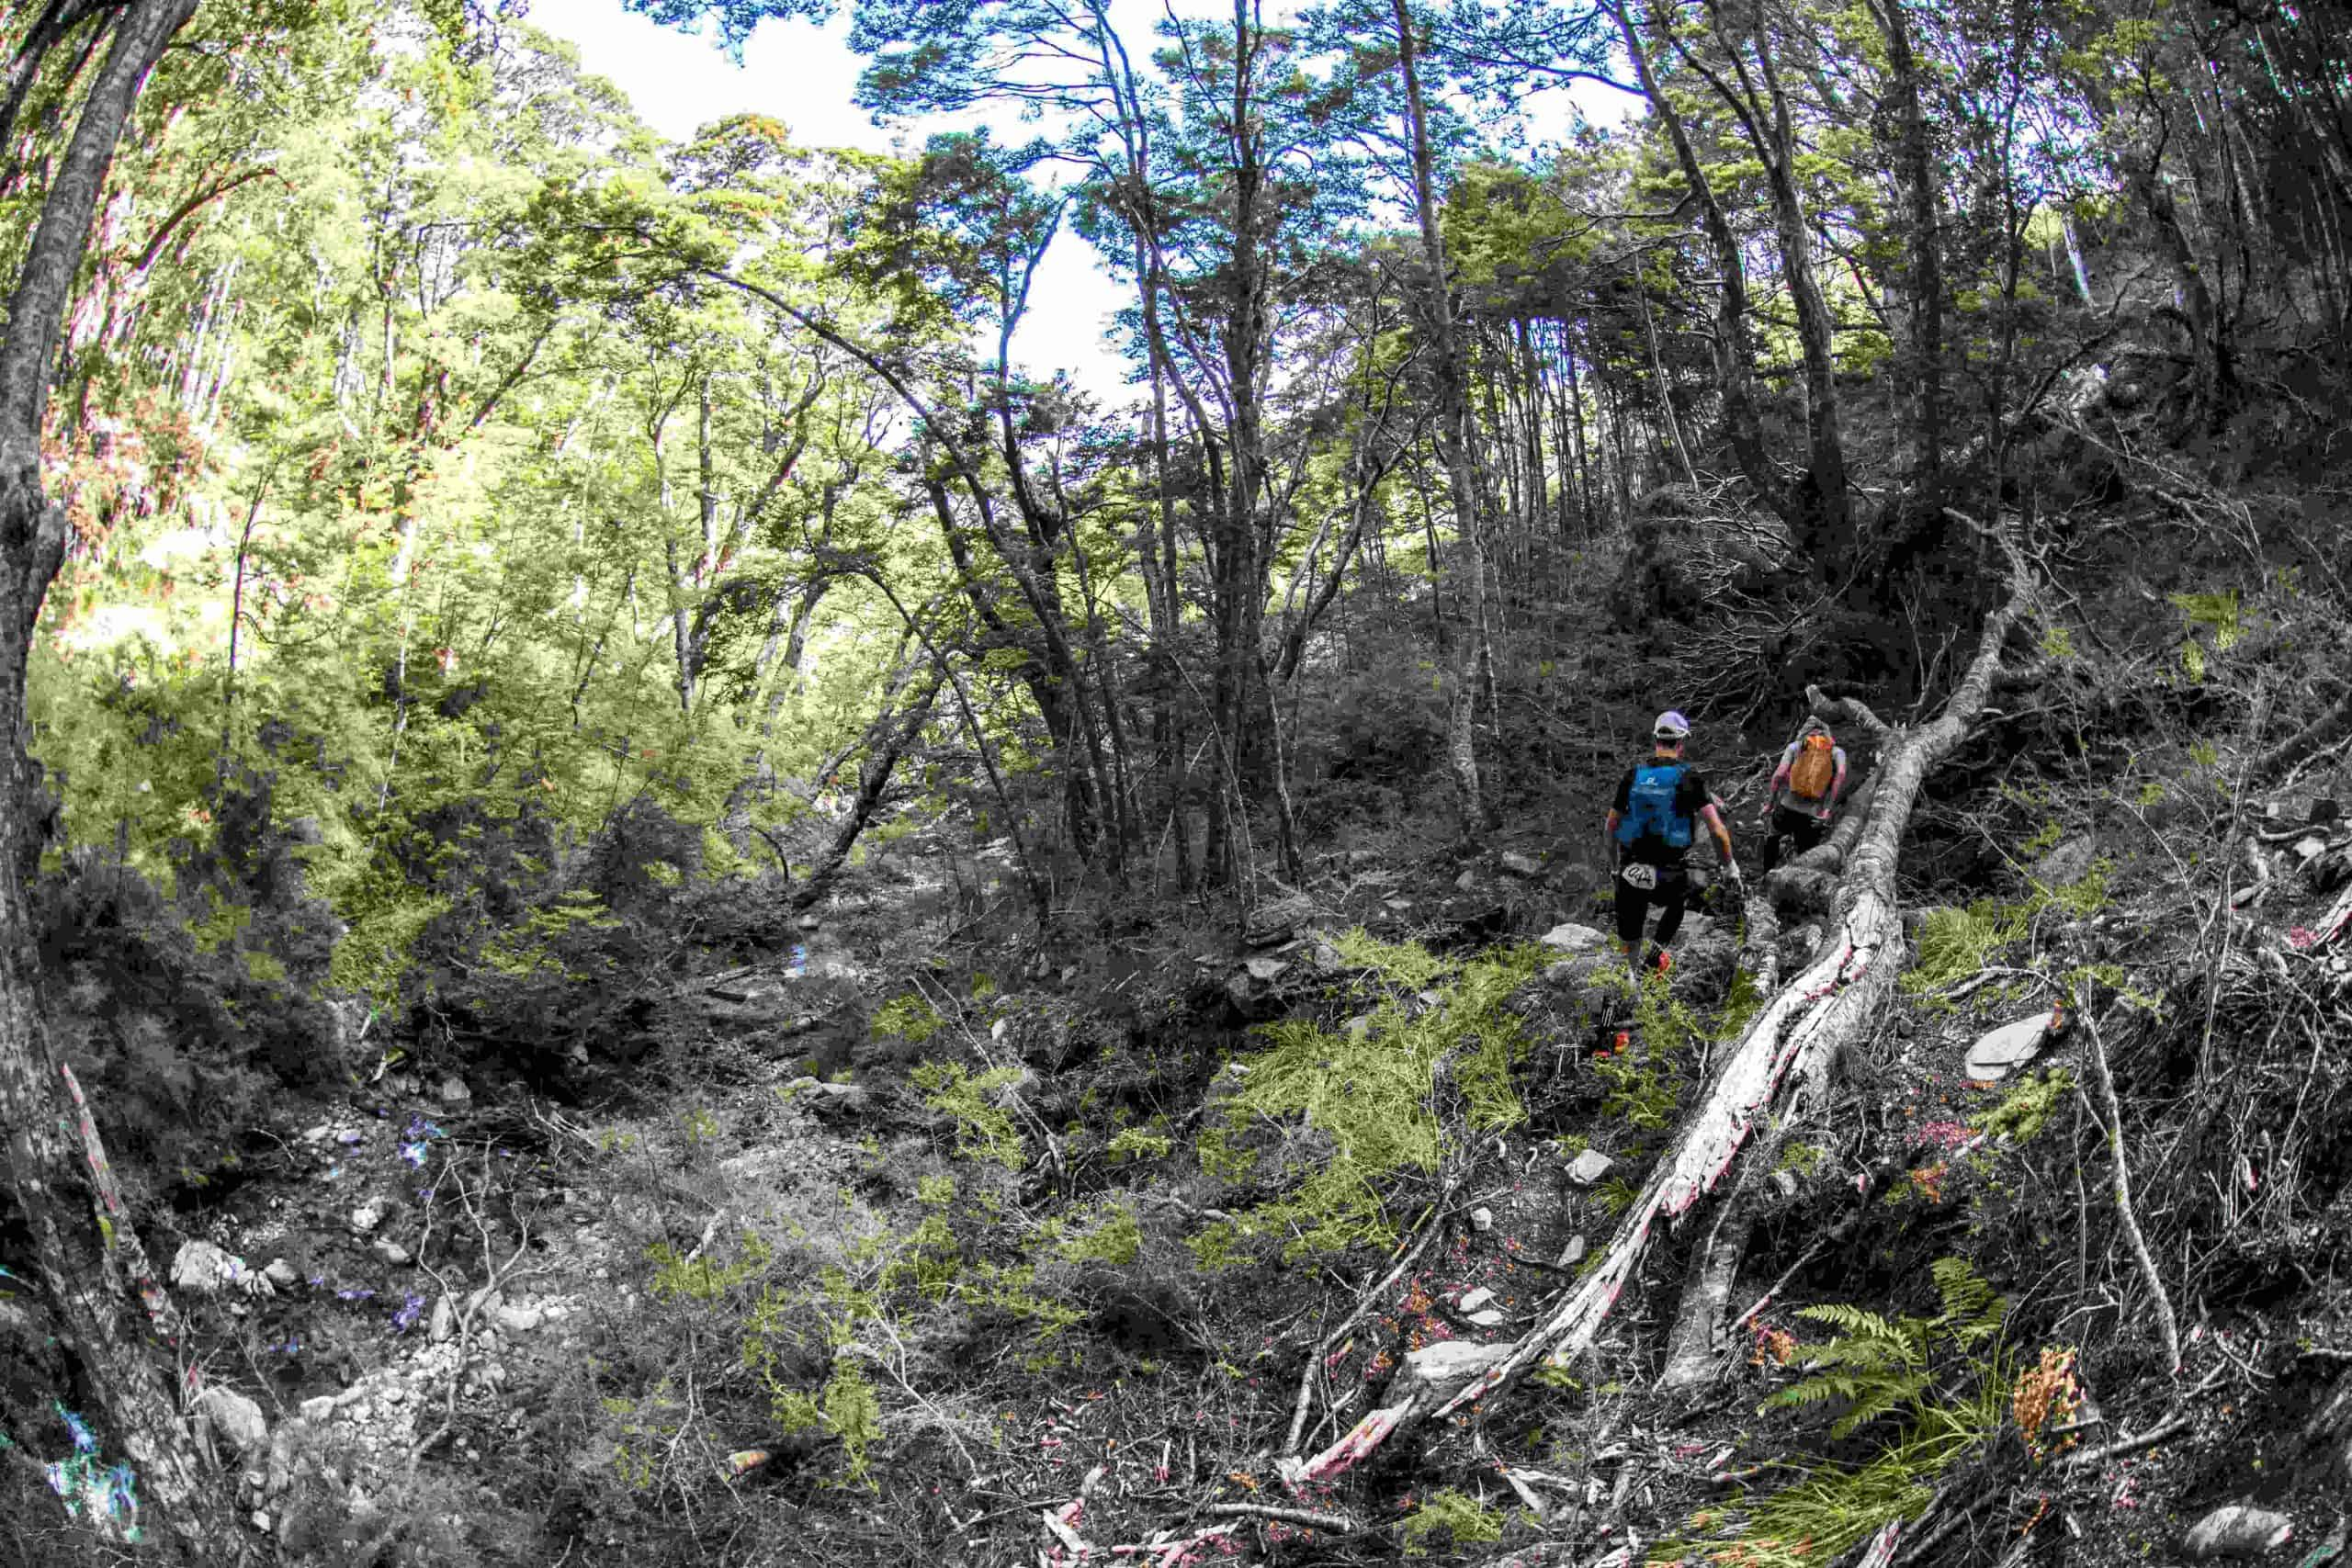 Two Revenant racers clamber over logs in the beech forest beside the rocky Nokomai River bed.